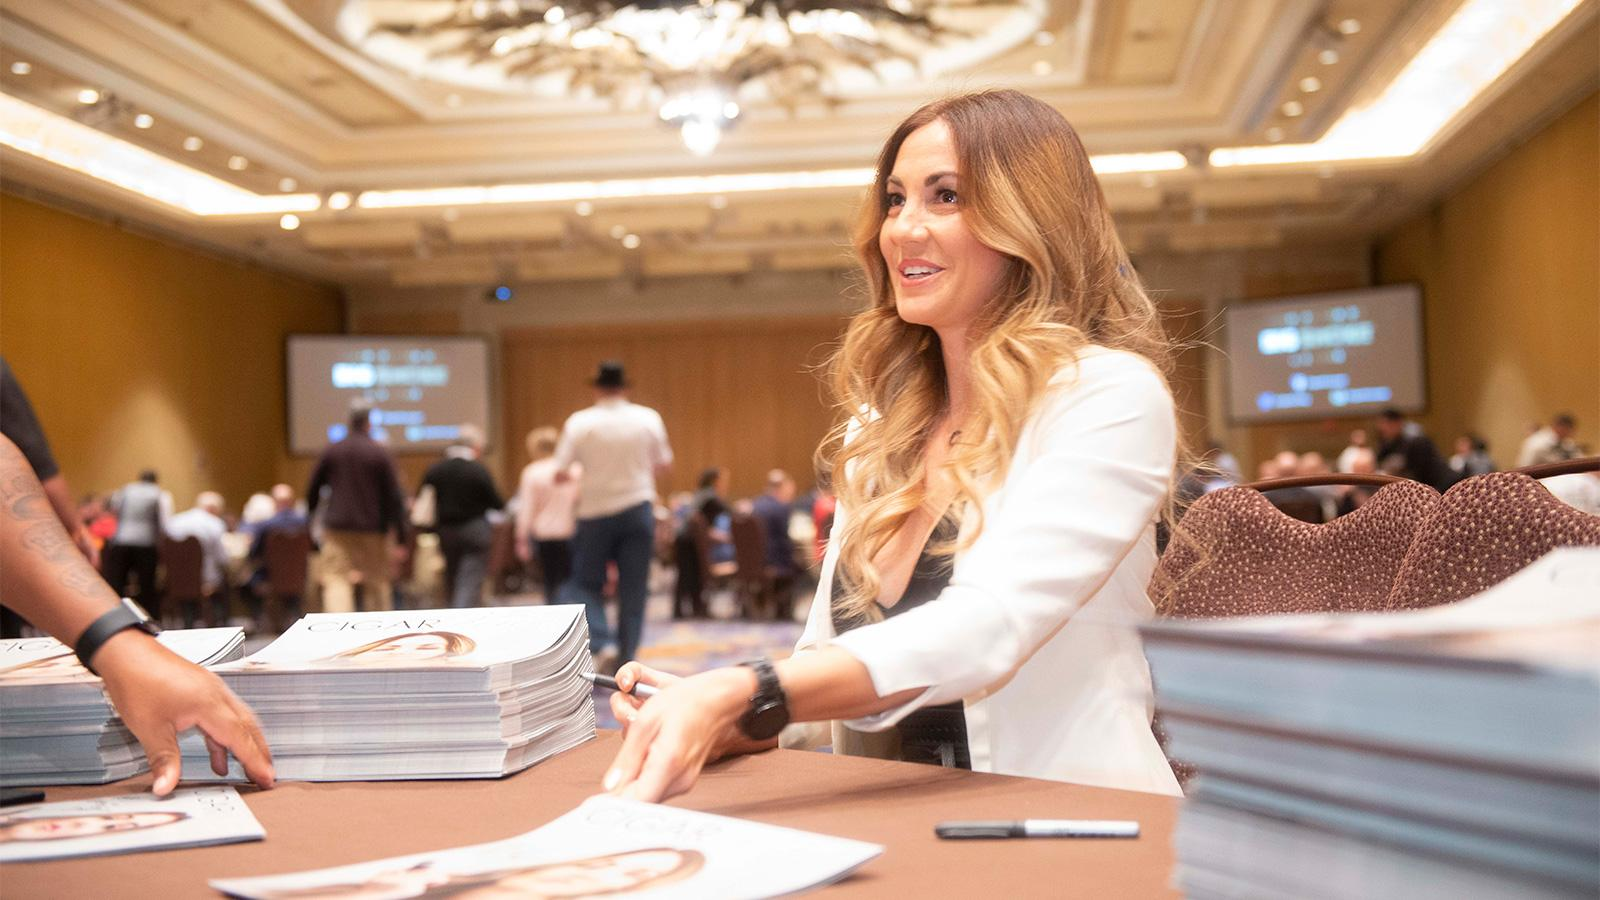 Micallef partner Delicia Silva was on hand to sign calendars.